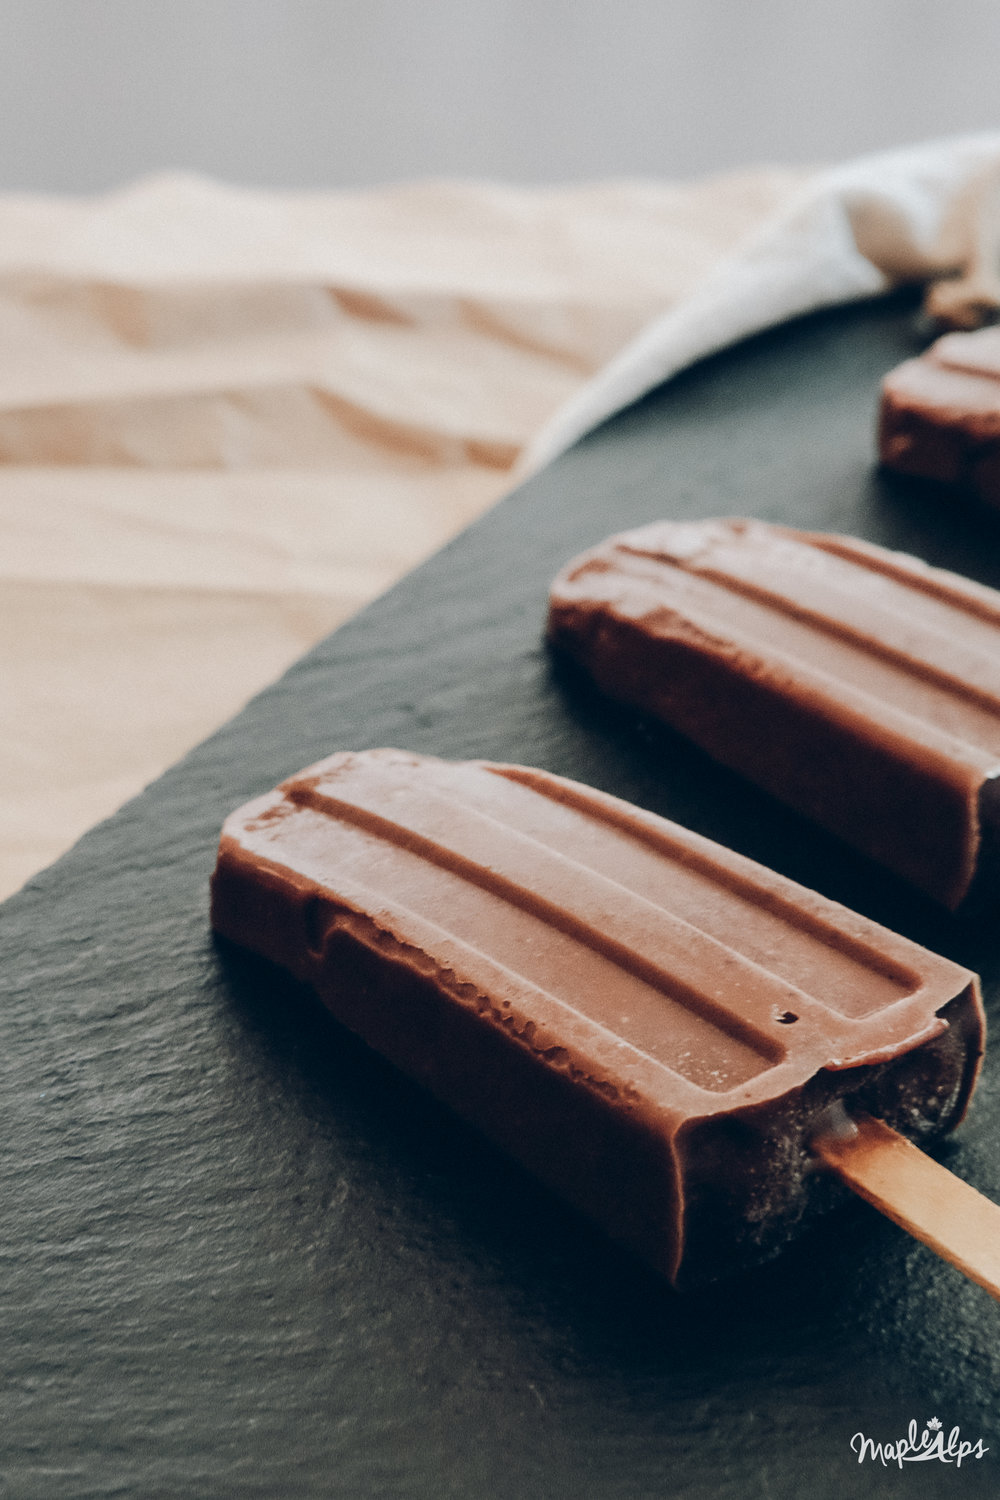 Creamy Chocolate Ice Pops